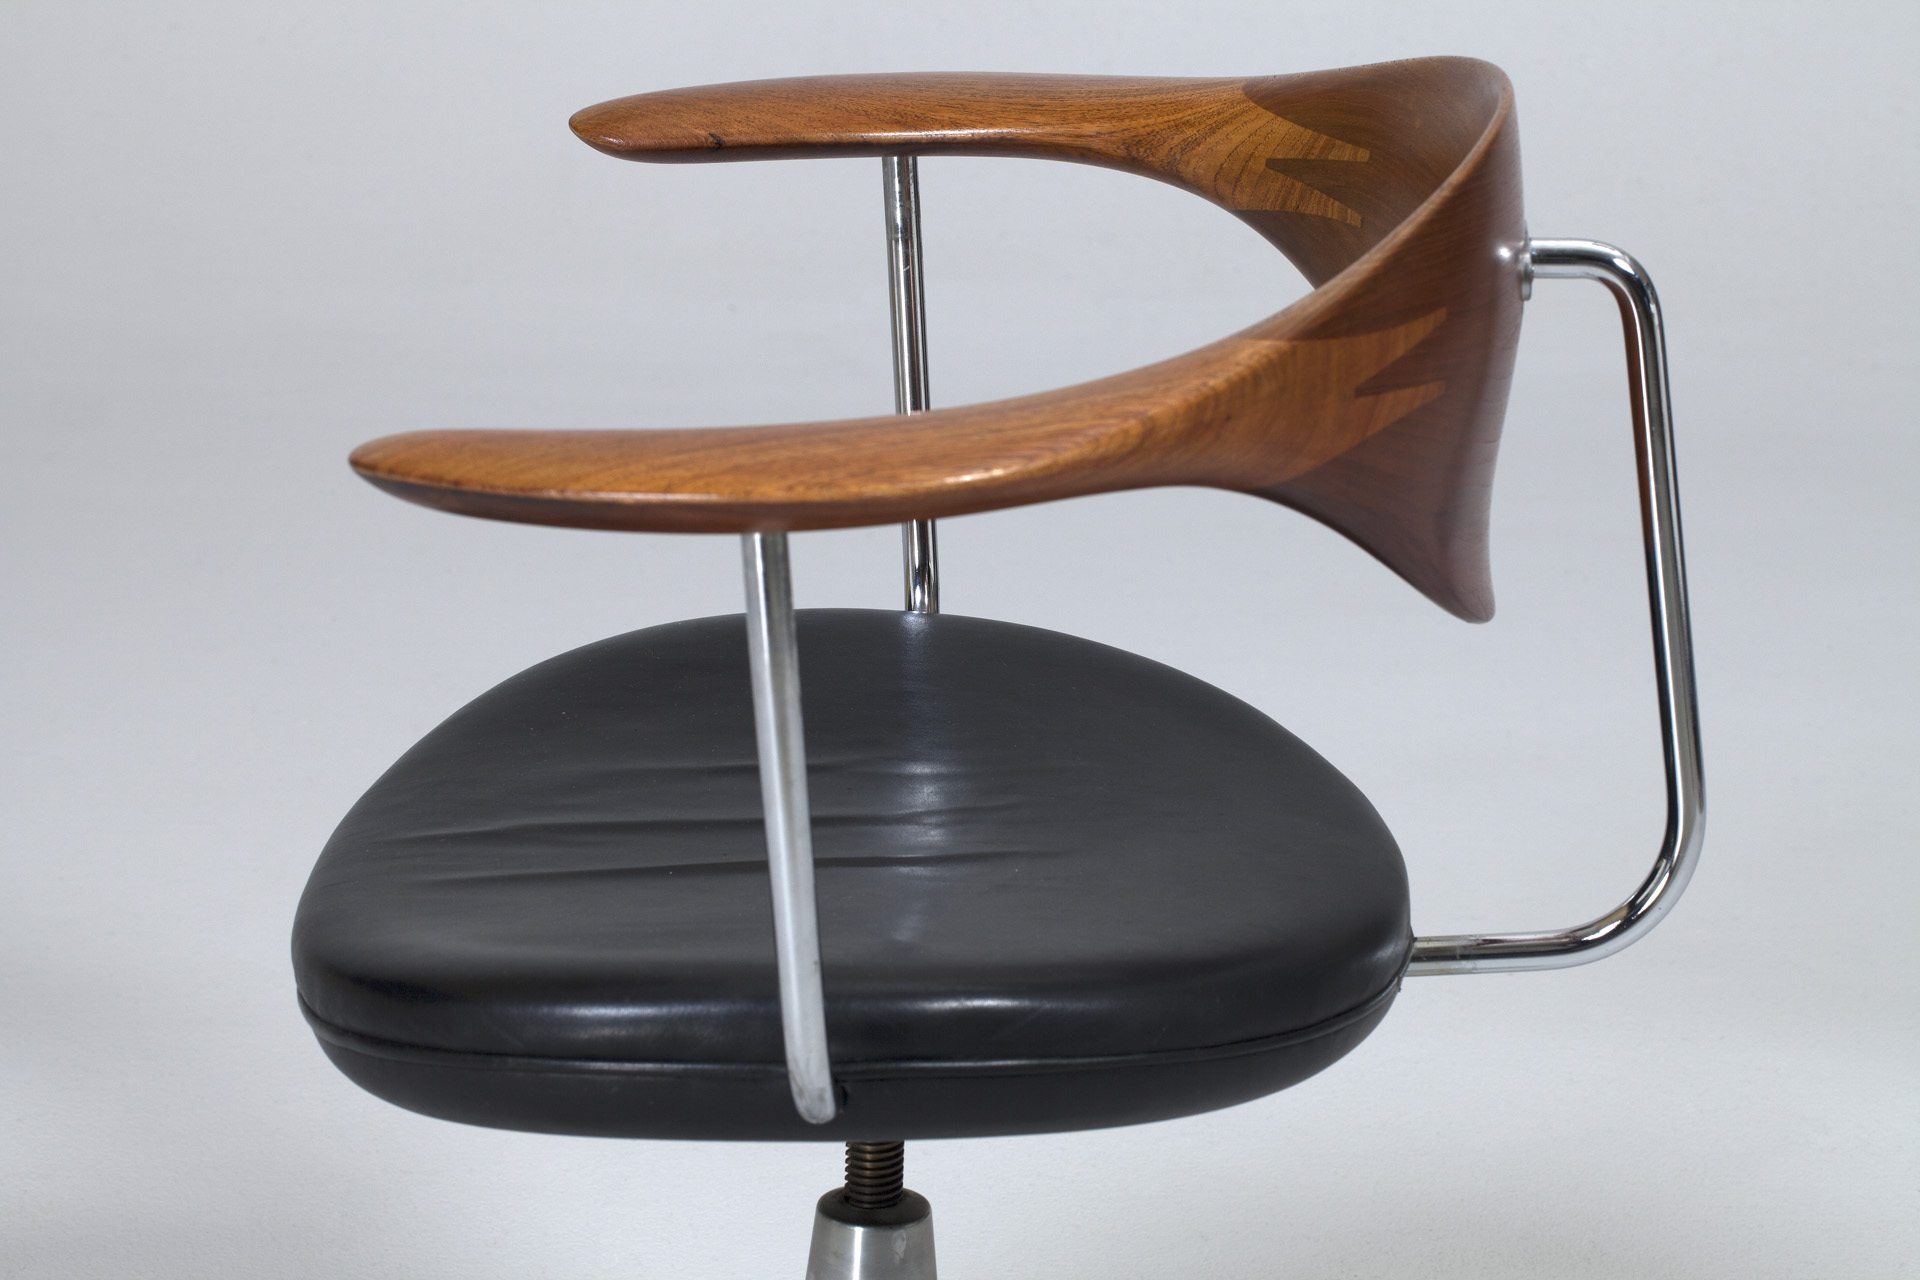 Jacksons Swivel Chair Hans J Wegner